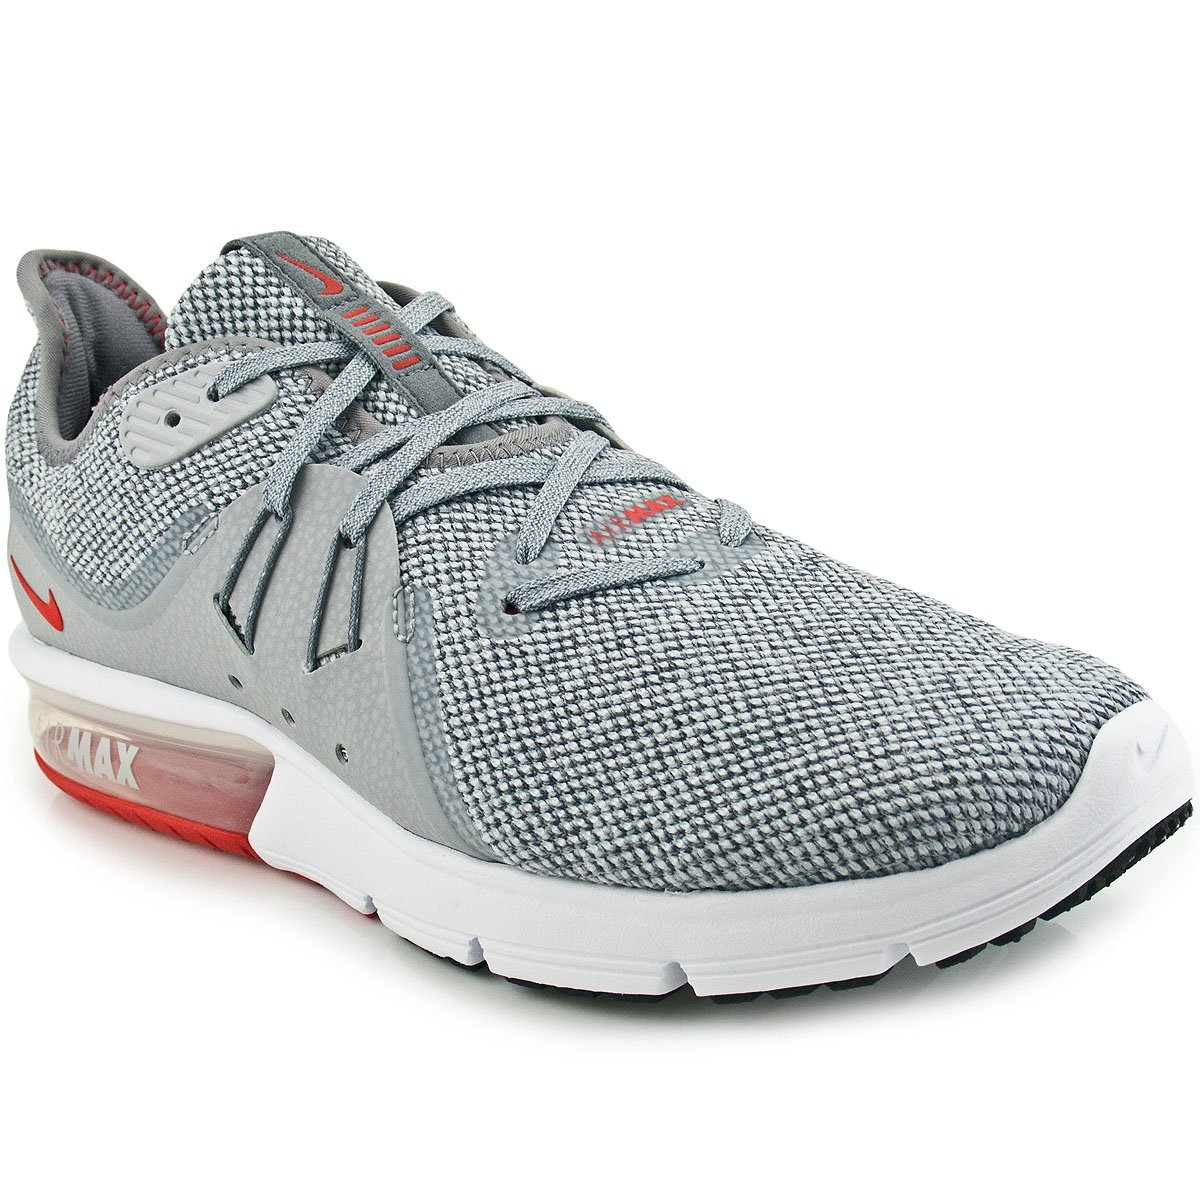 876964b58f210 Tênis Nike Air Max Sequent 3 Masculino